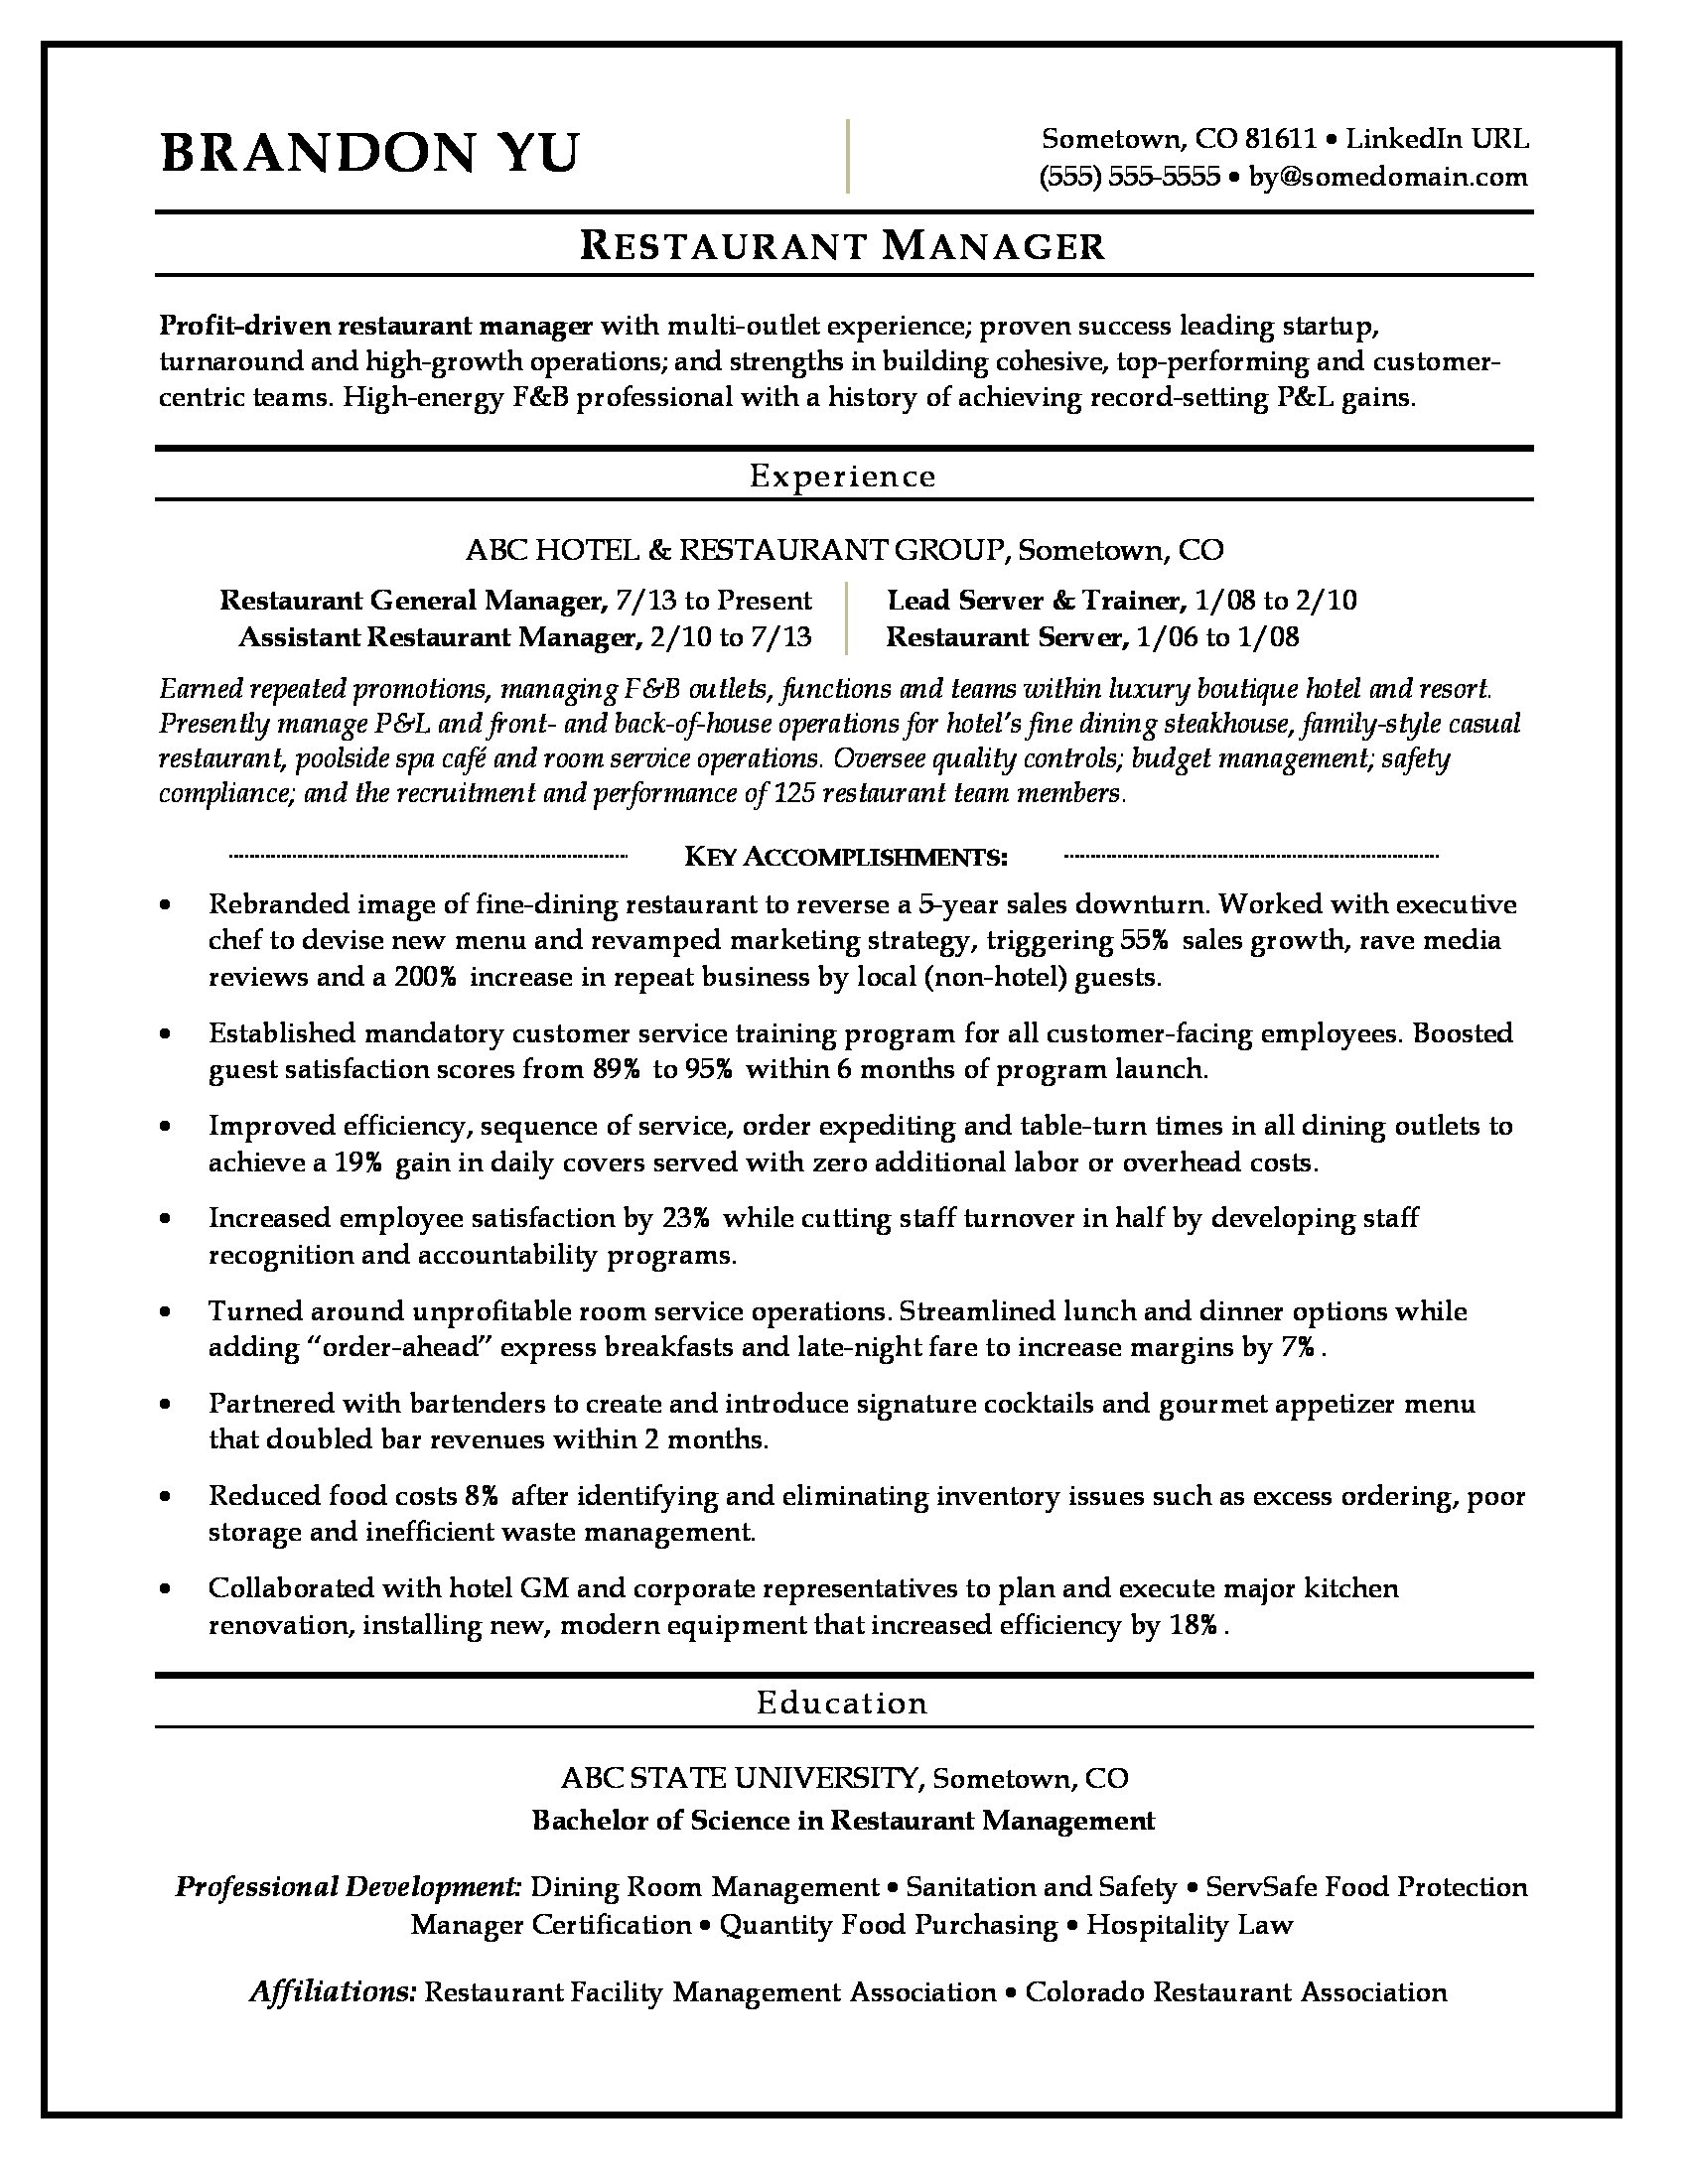 Sample Resume For A Restaurant Manager  Customer Service Manager Resume Sample